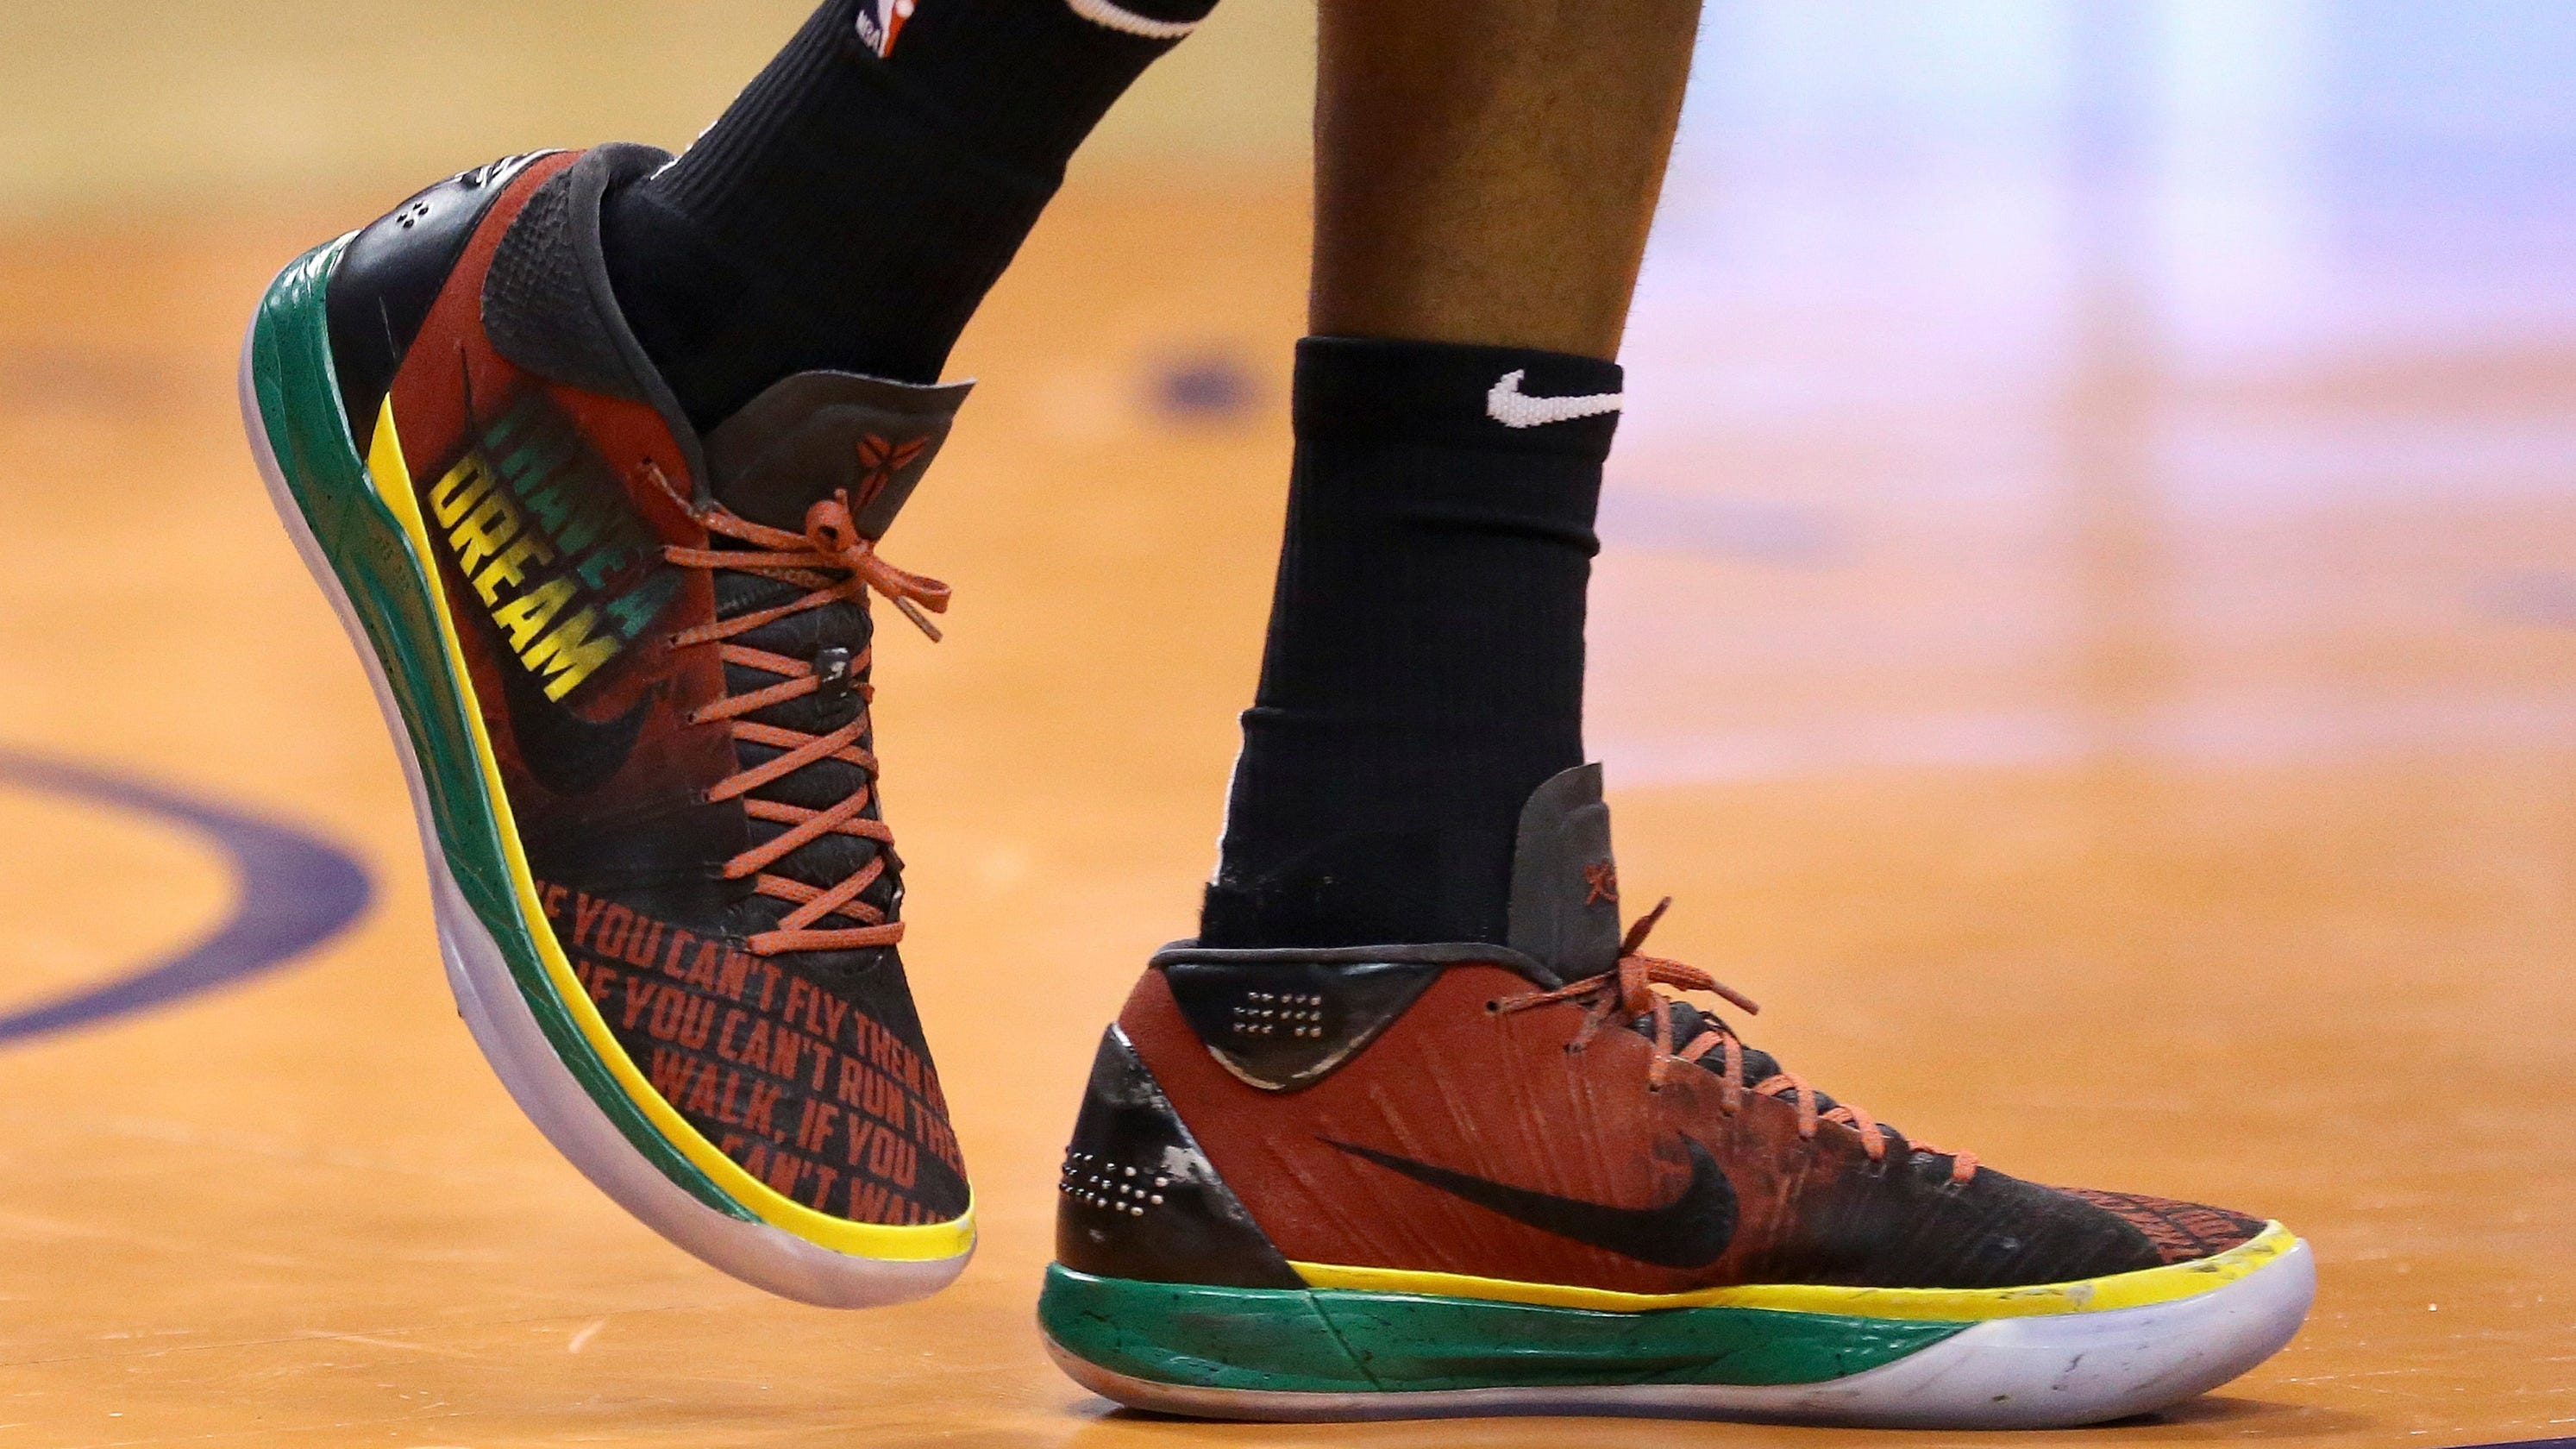 ebebea1e48ac2 Suns celebrate Black History Month with custom designed shoes featuring  civil rights icons